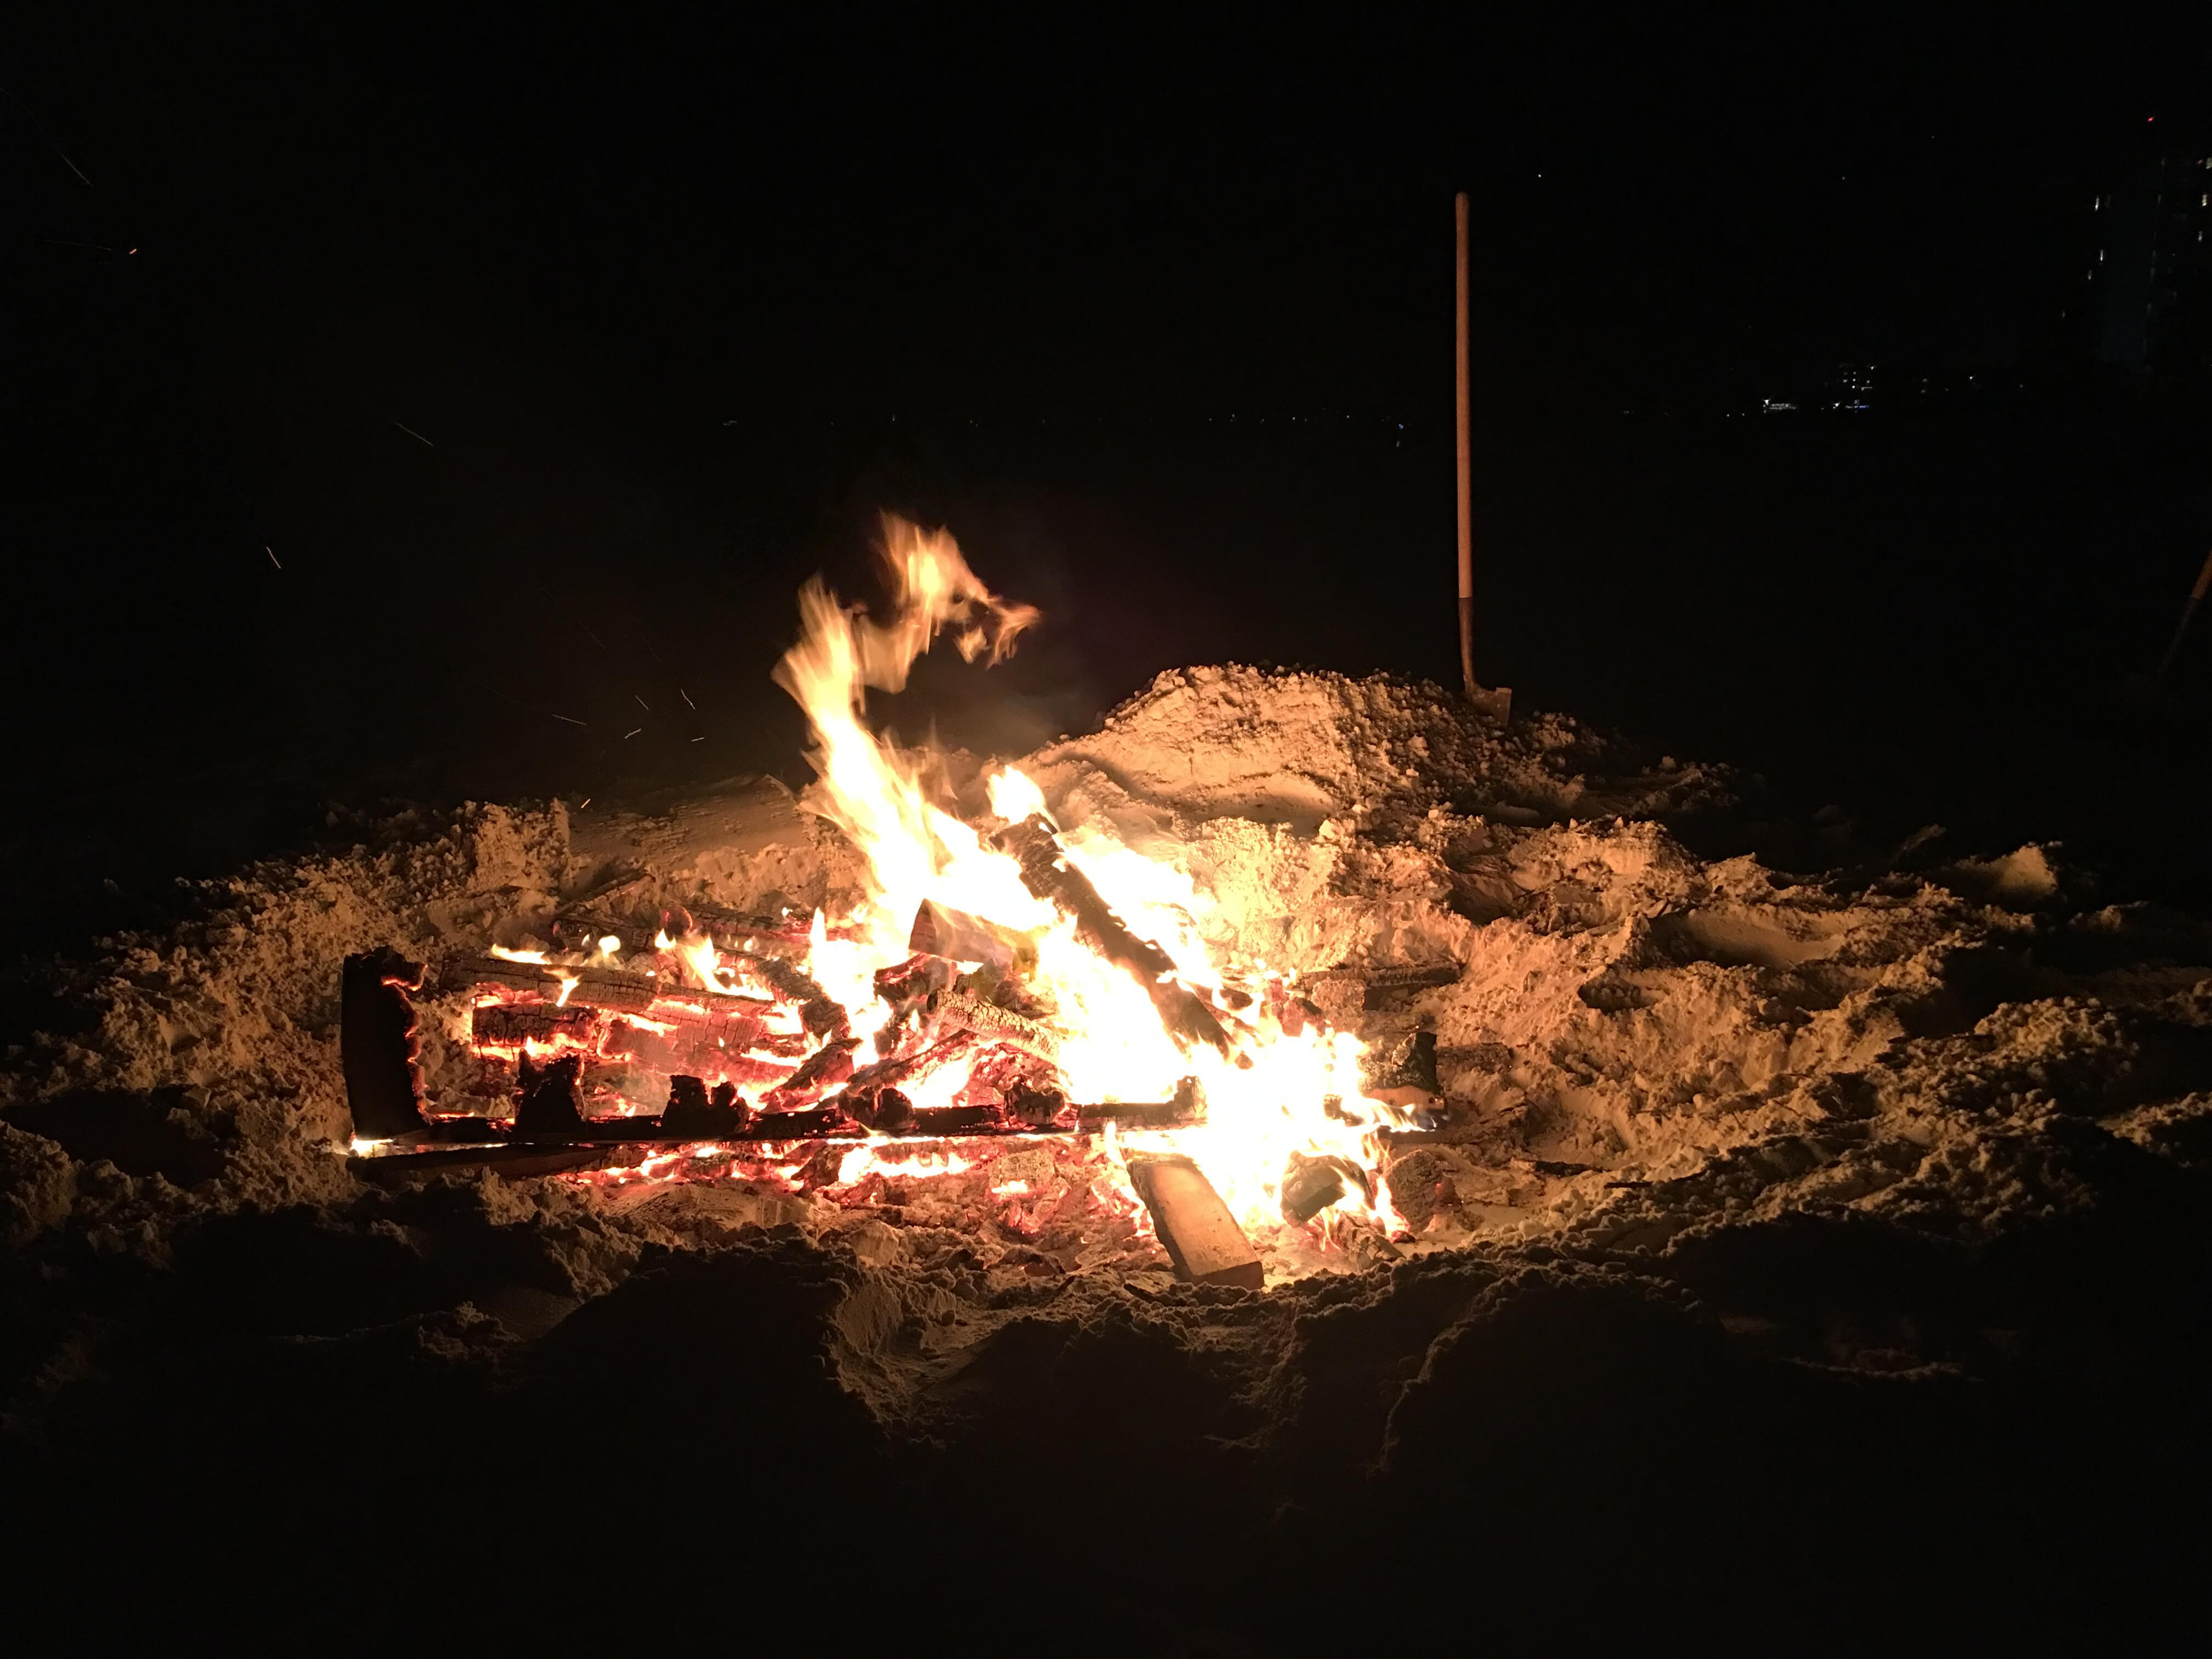 New Year's Eve Fire on the Beach